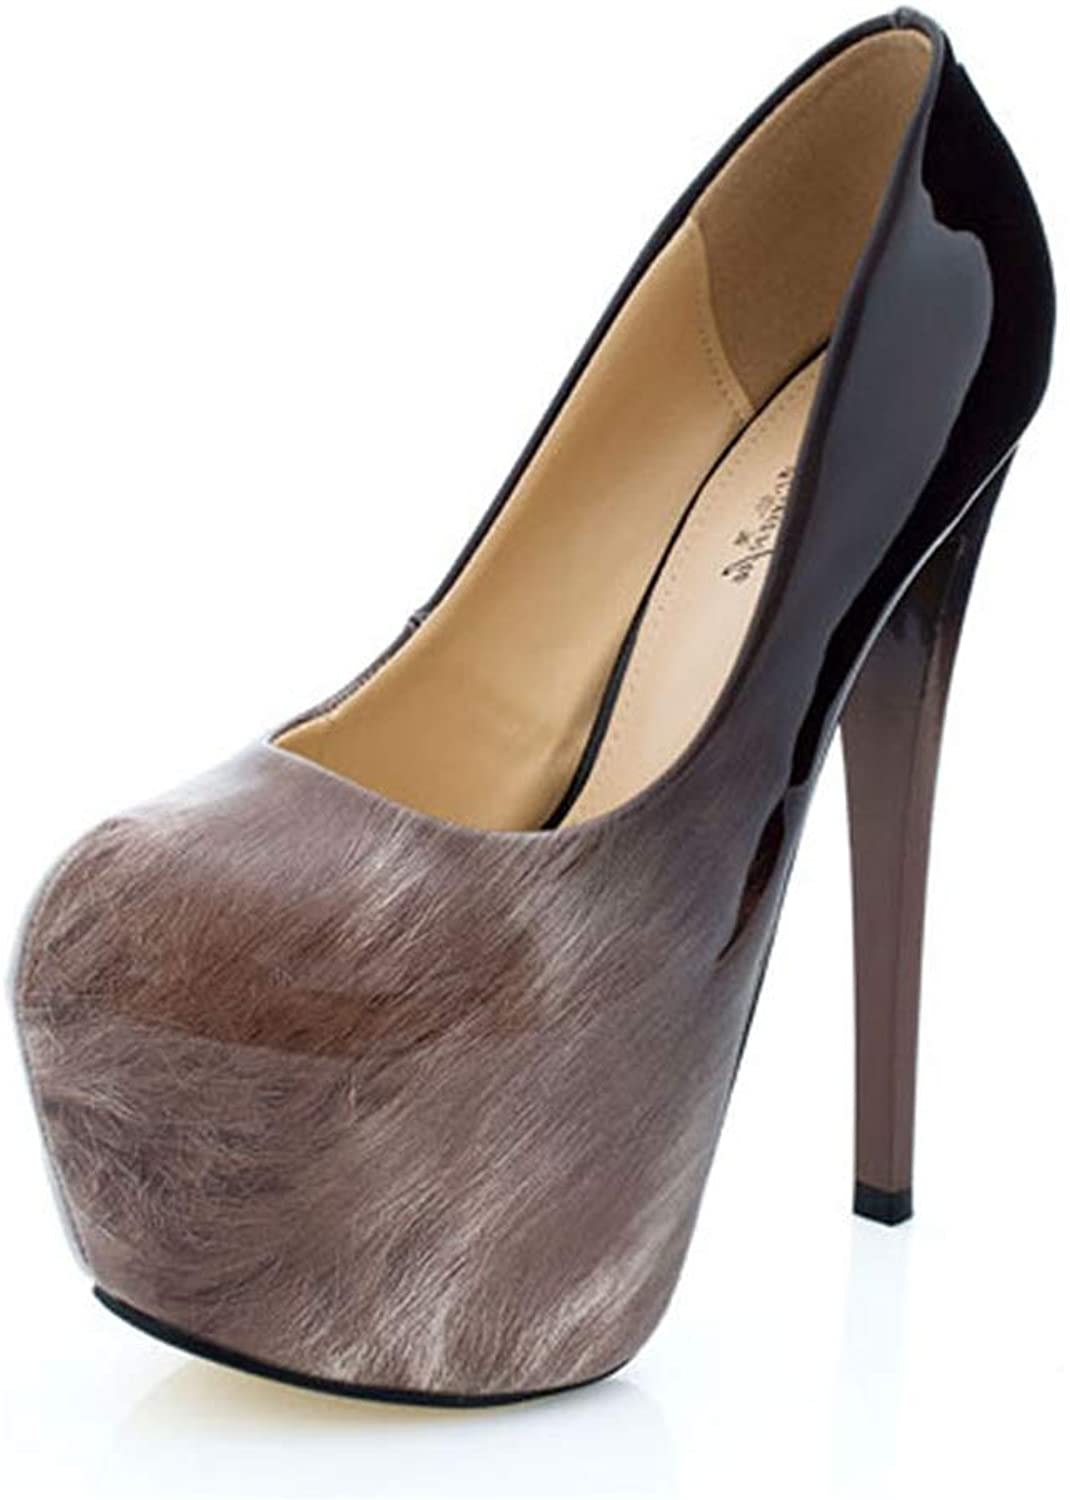 Women's Pumps Synthetic Leather Stilleto Very High Heel Platform Court shoes Gradient color Fashion shoes Wedding Party & Evening (color   A, Size   42)